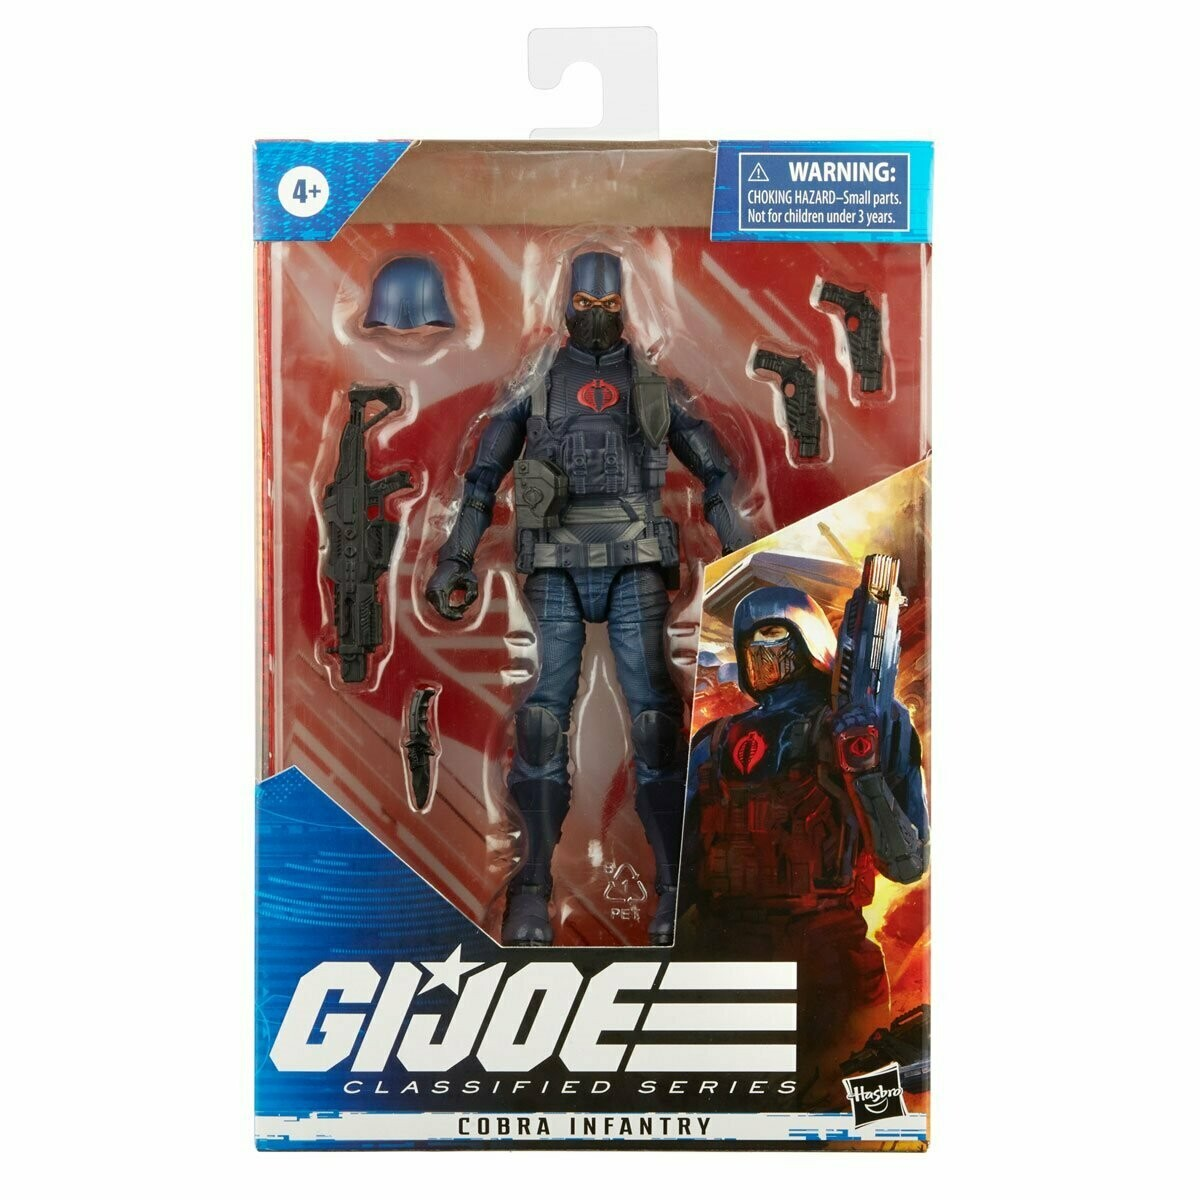 G.I. Joe Classified Series 6-Inch Cobra Infantry Action Figure  ~Preorder Coming Feb 2021